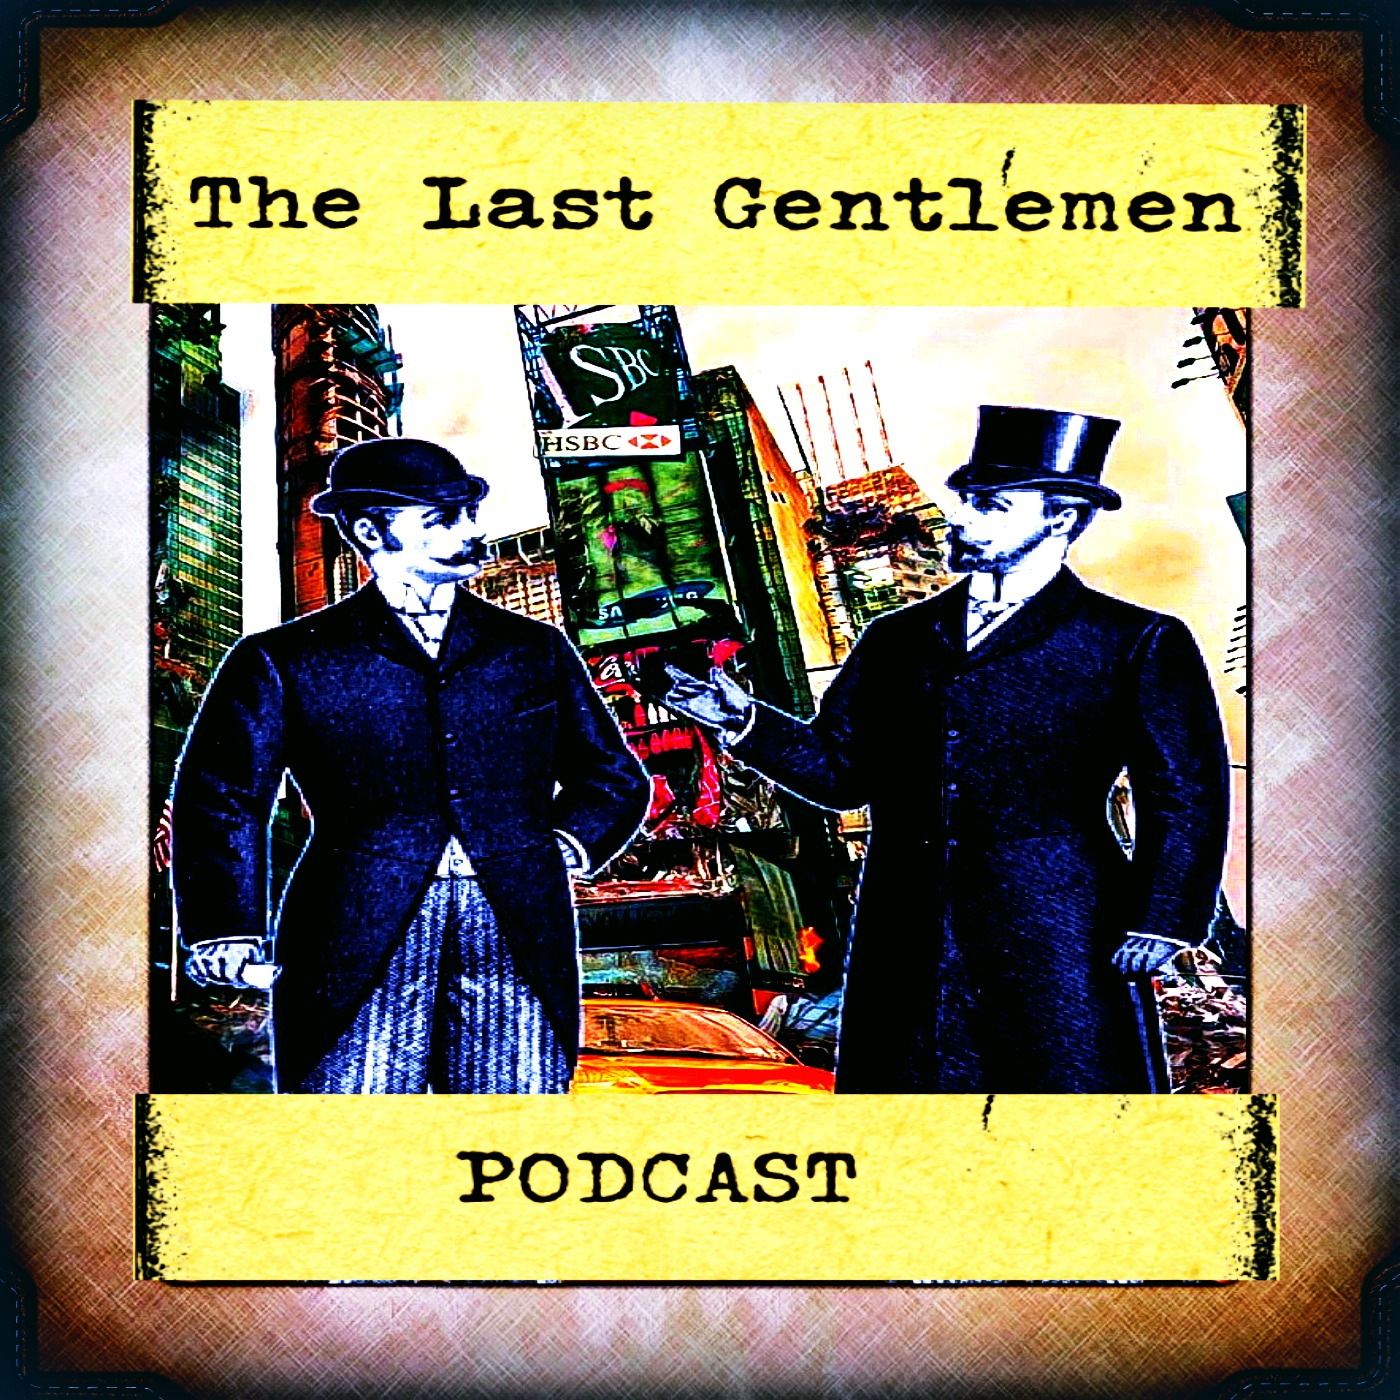 #169  Grab 'em By The Podcast!